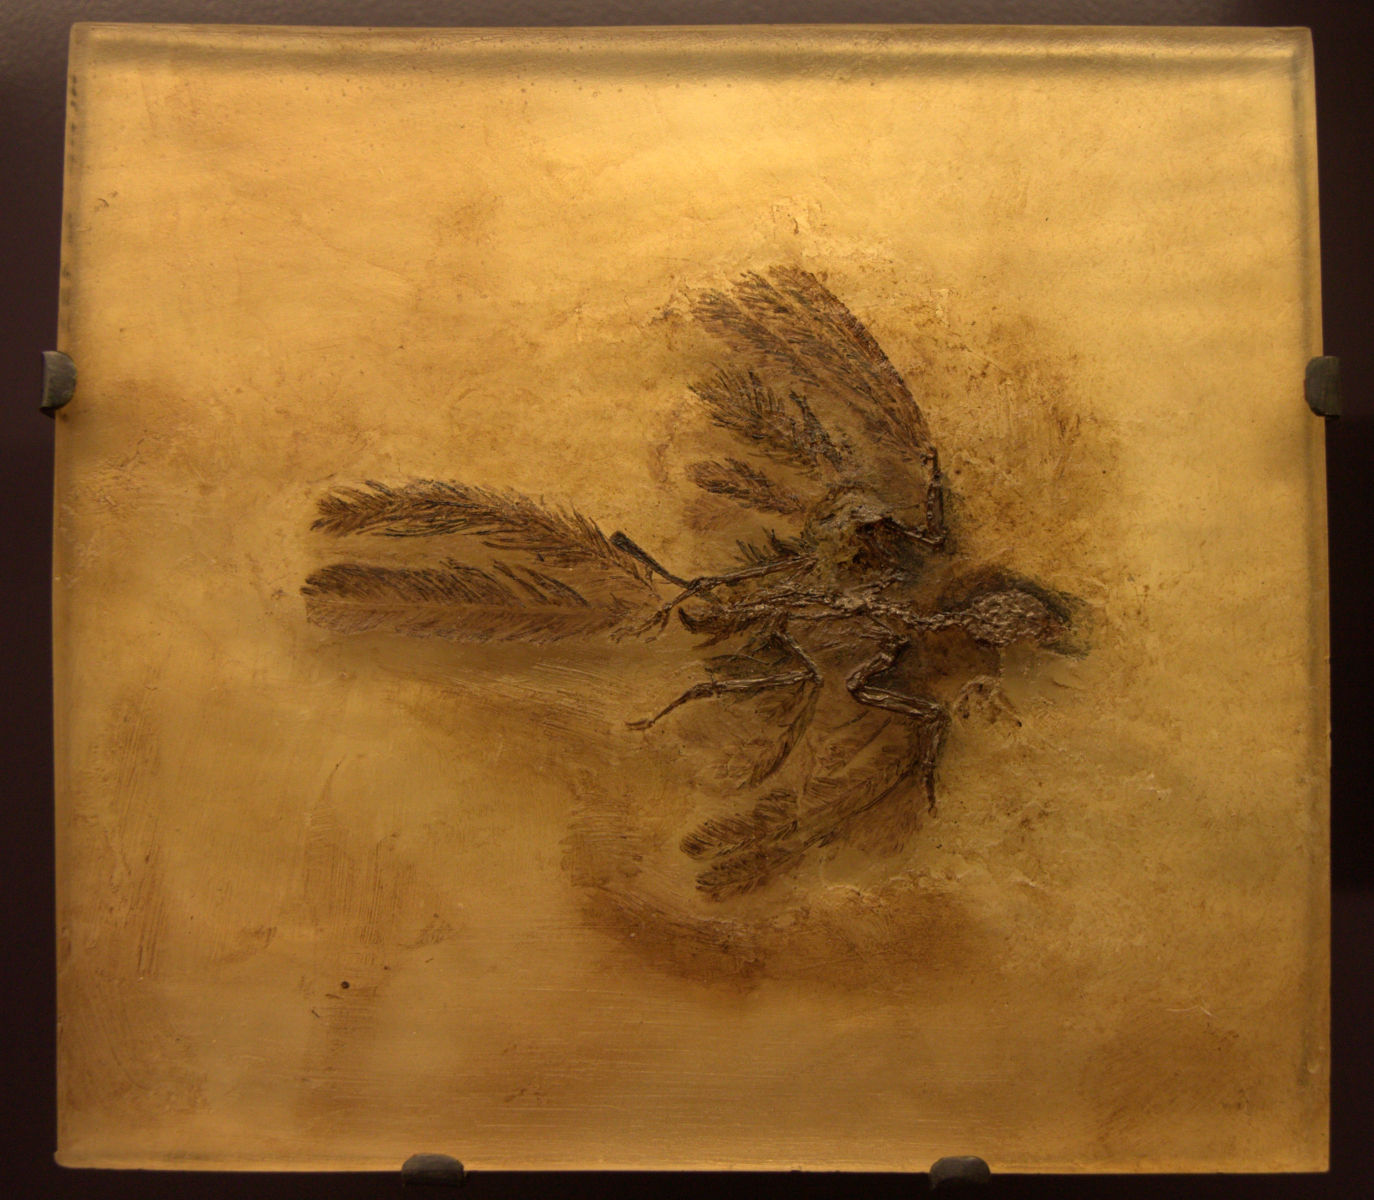 Fossil of Parargarnis - an insectivorous bird that was similar to present day hummingbirds